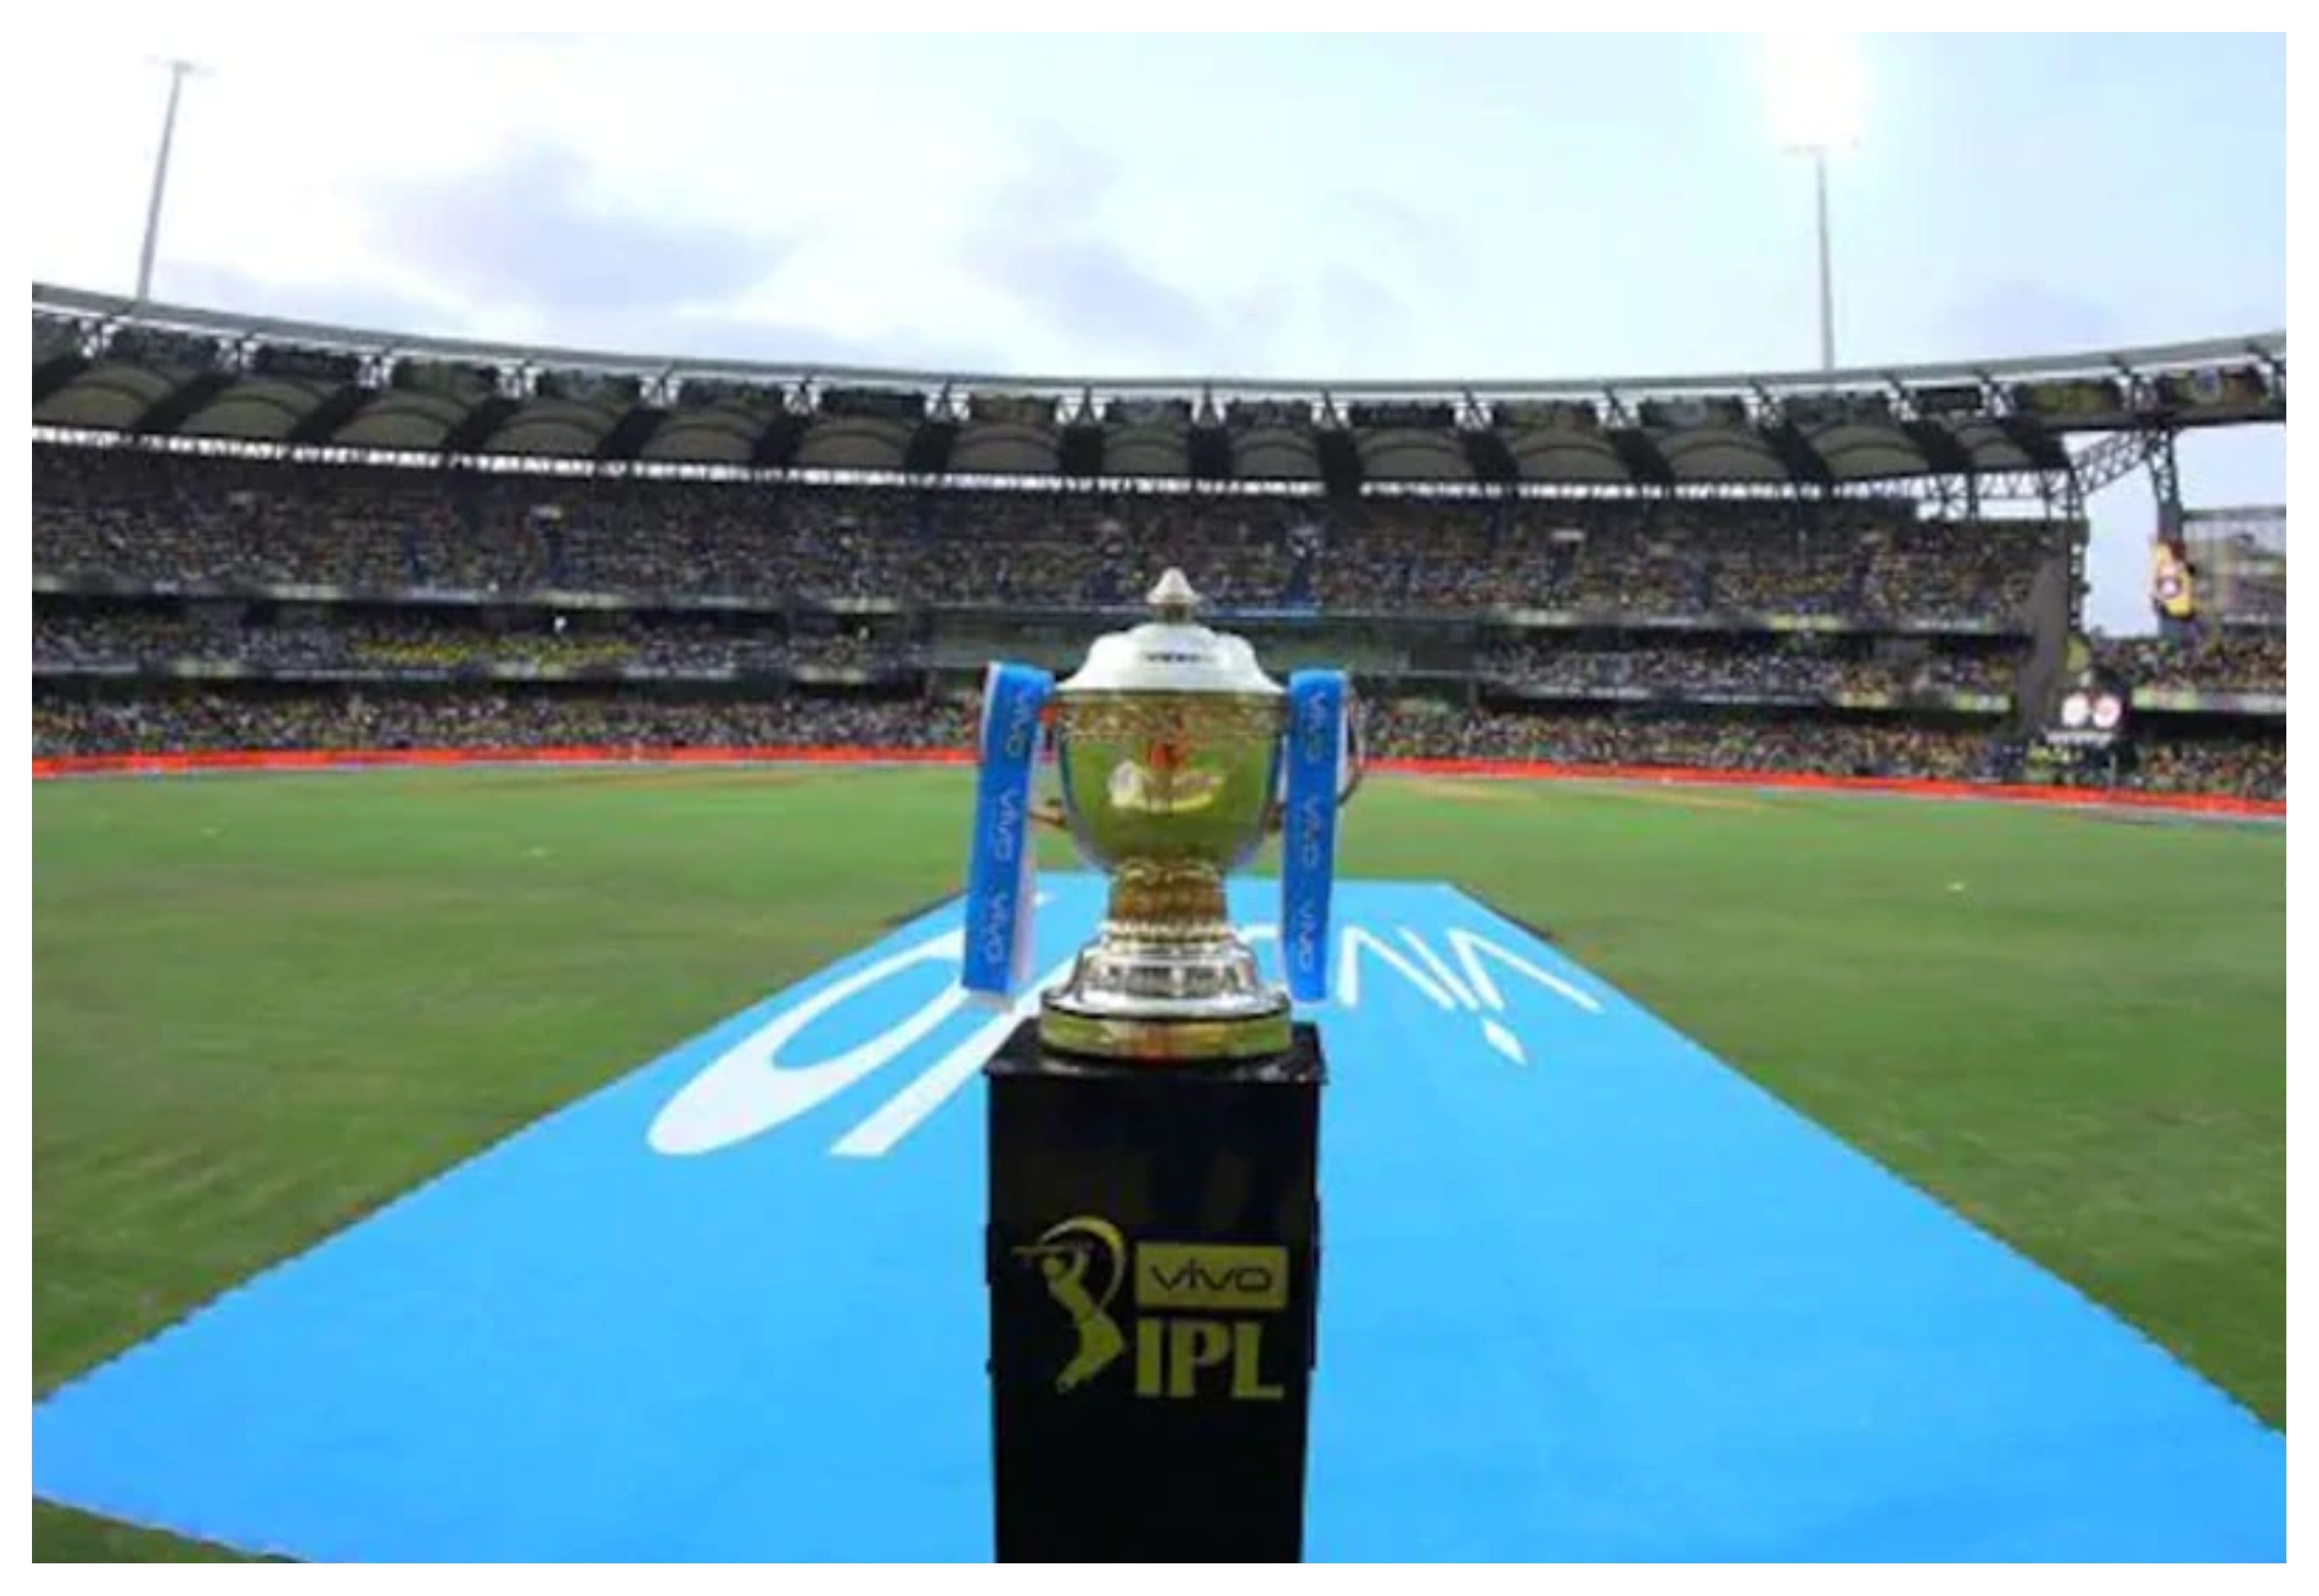 The IPL 2021 is due to begin on April 9 | BCCI/IPL